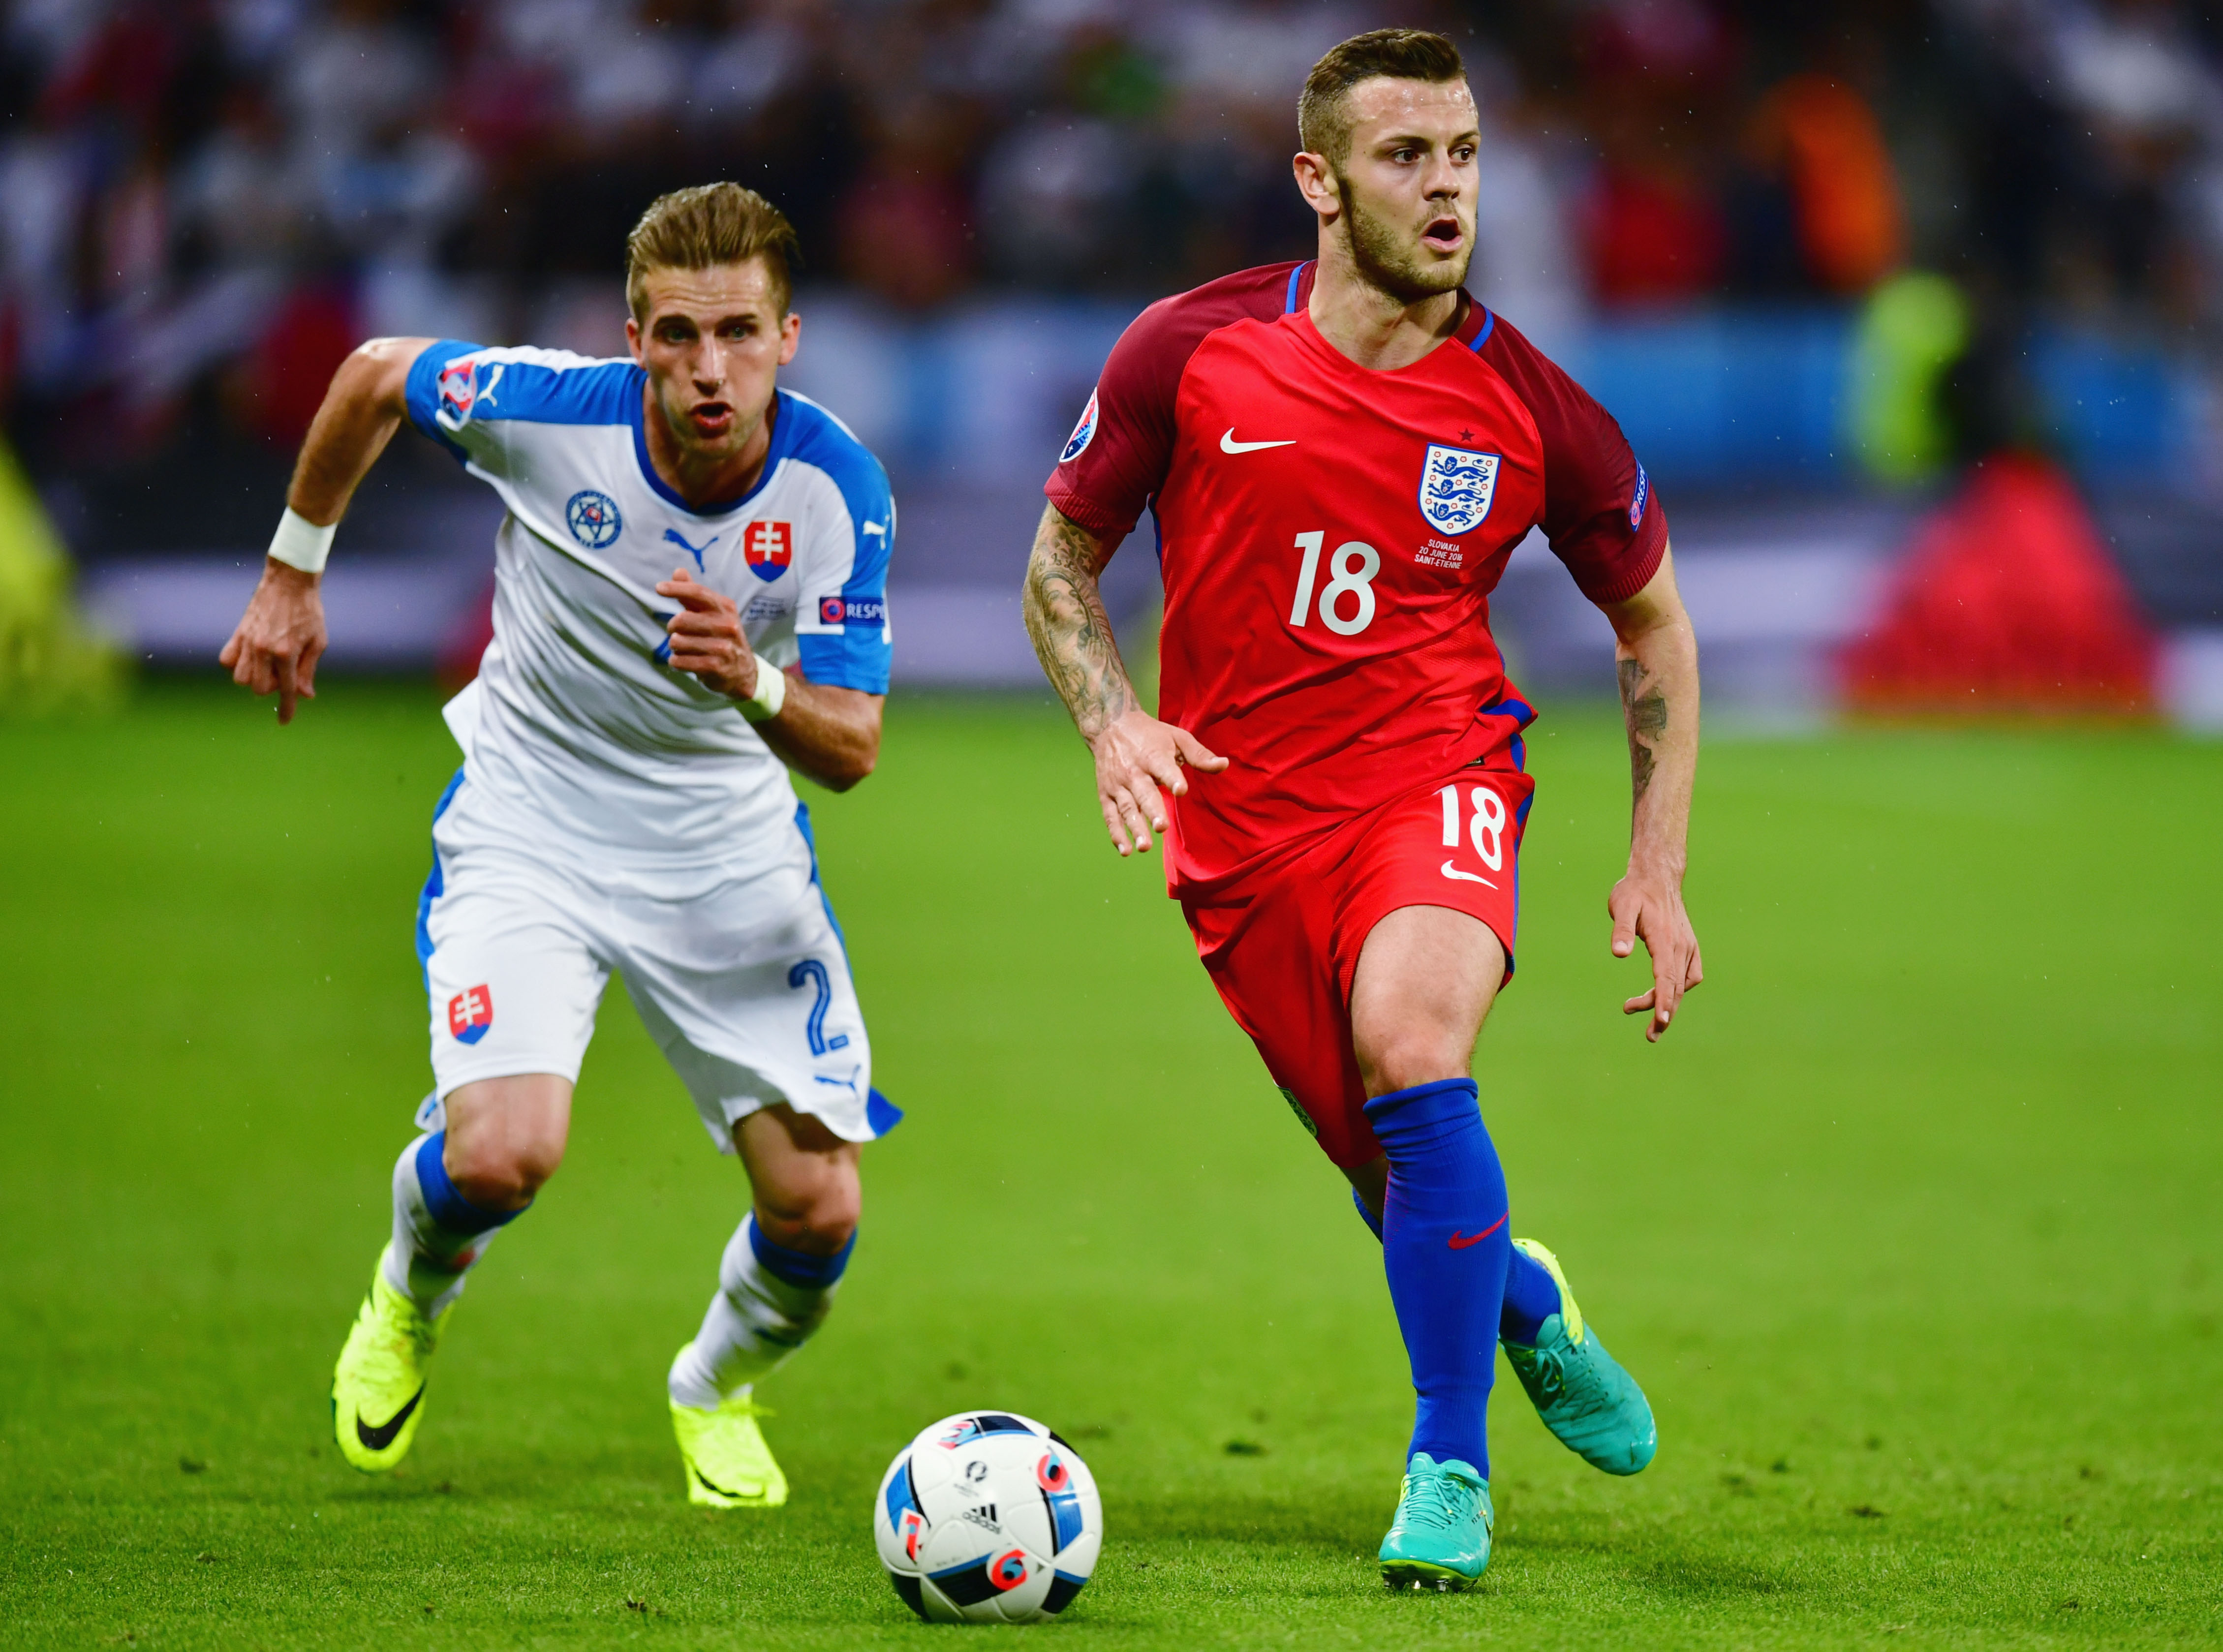 Jack Wilshire underperformed for England on Monday and should find it hard to get back into the squad against Iceland.